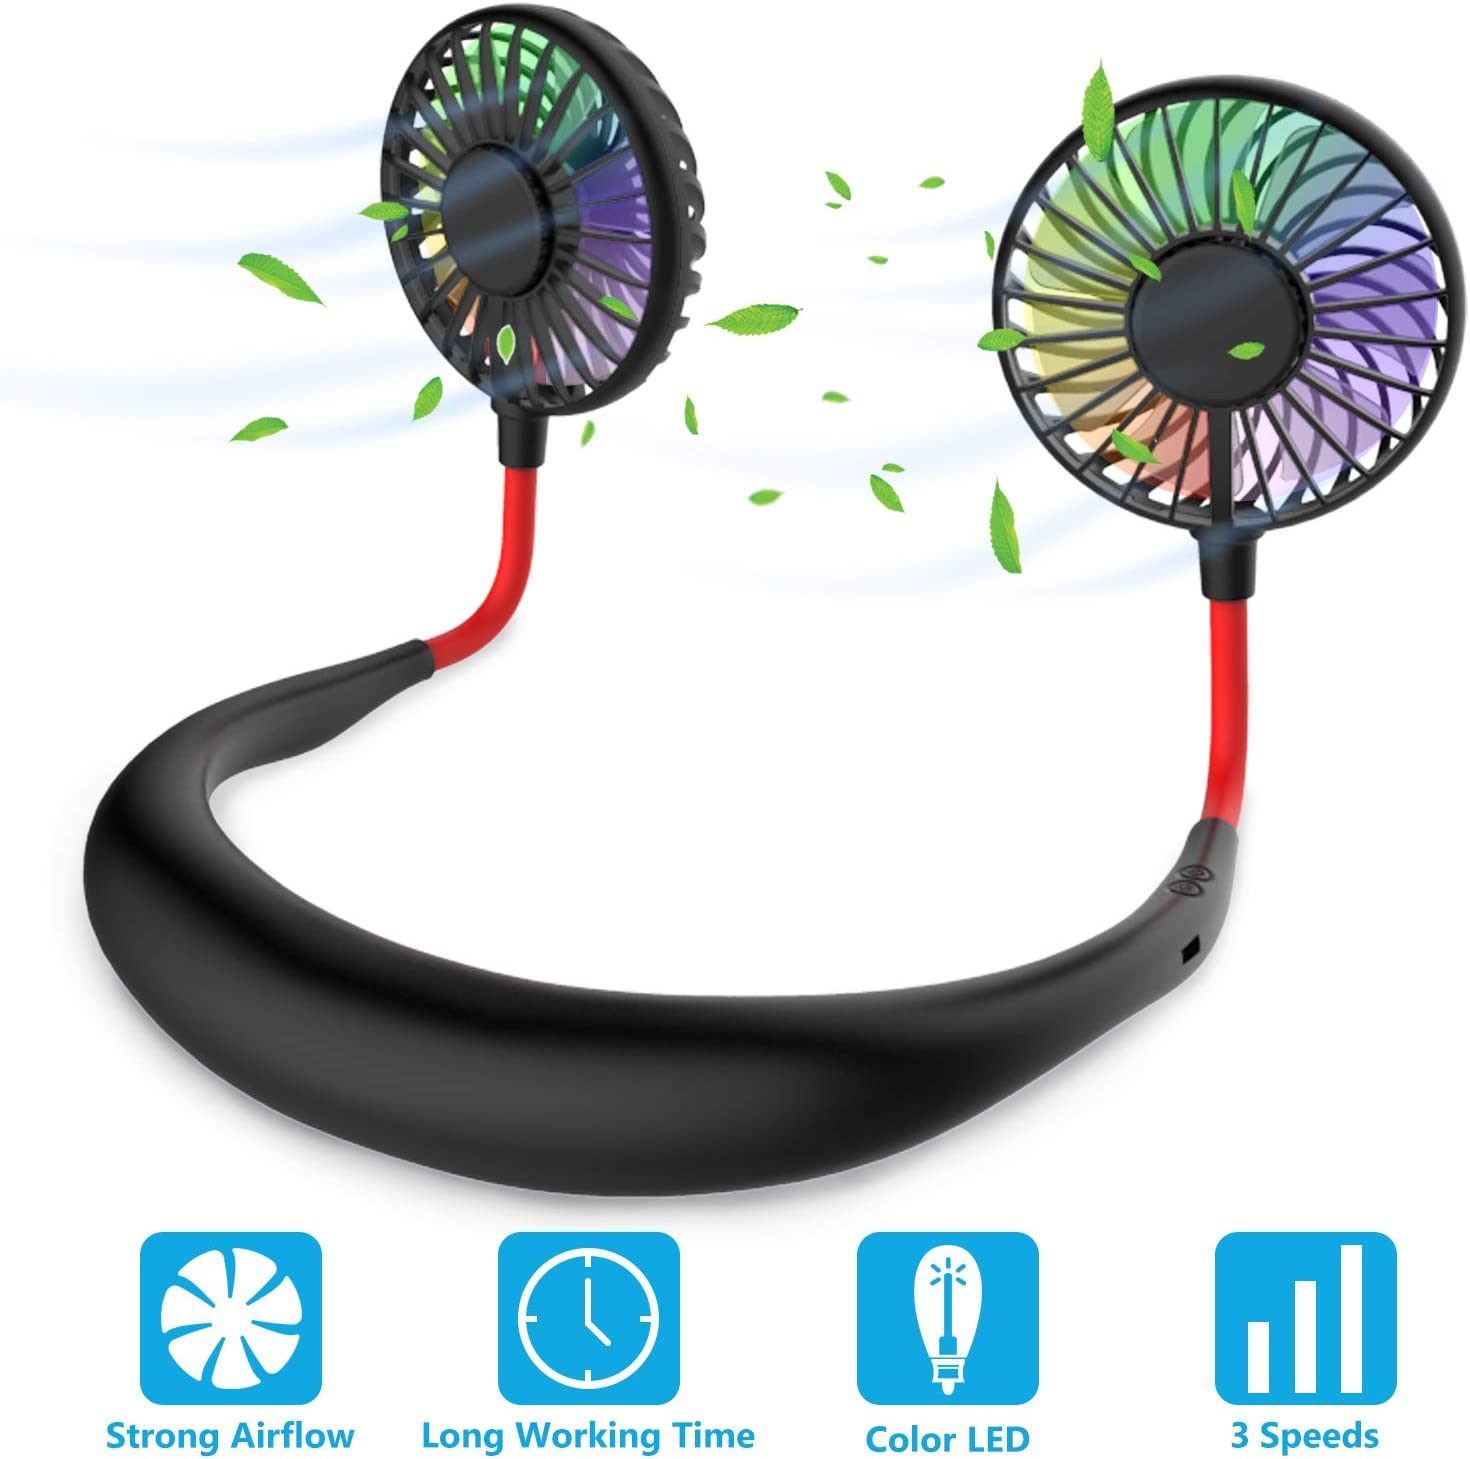 Rechargeable Mini USB Personal Fan Battery Operated for Home Office Travel Indoor Outdoor Black daffodilblob Hands Free Portable Neck Fan